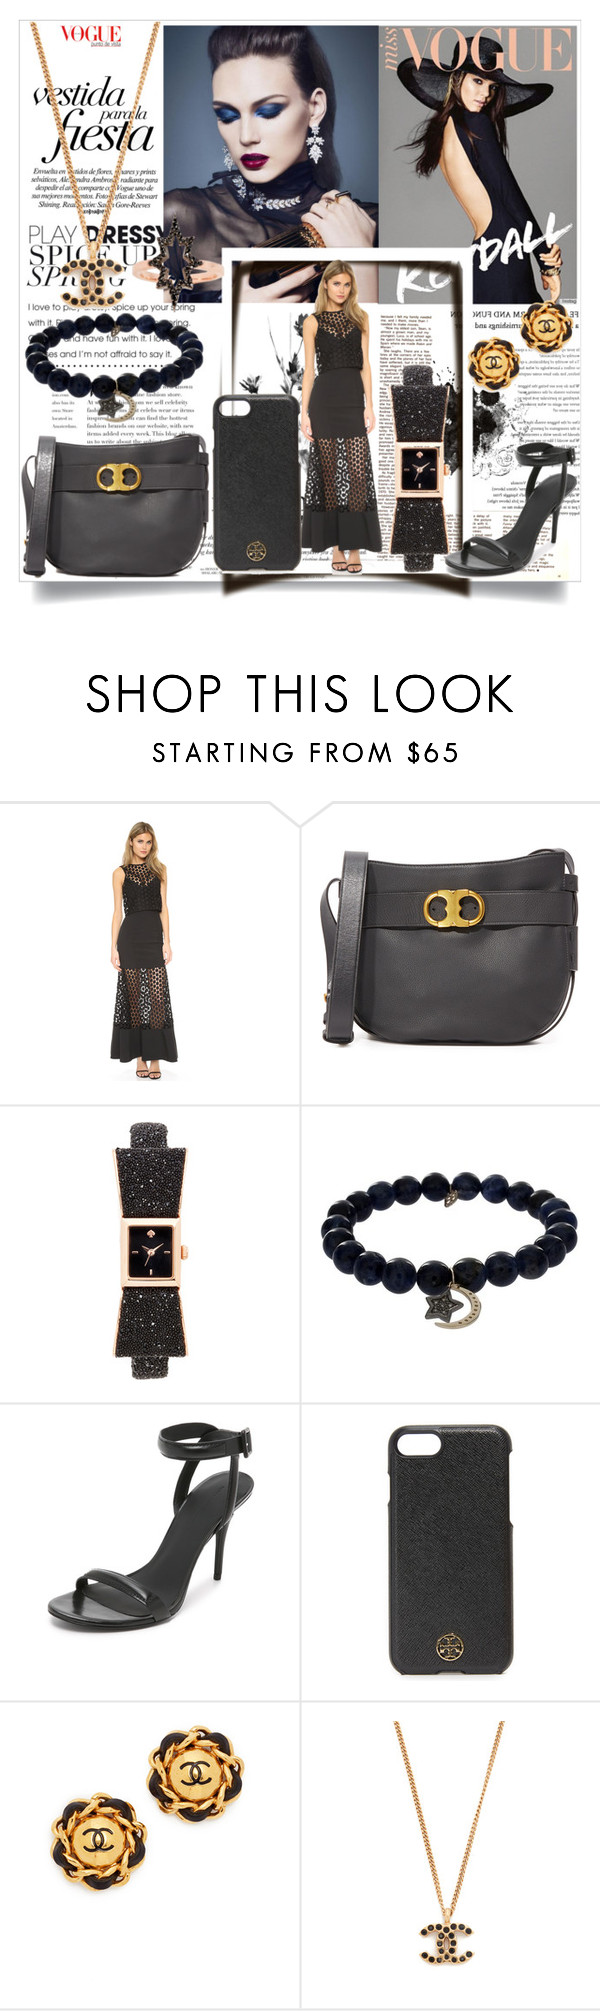 """New Year Style Resolution!!"" by stylediva20 on Polyvore featuring Nicholas, Tory Burch, Kate Spade, Sydney Evan, Alexander Wang and MAHA LOZI"